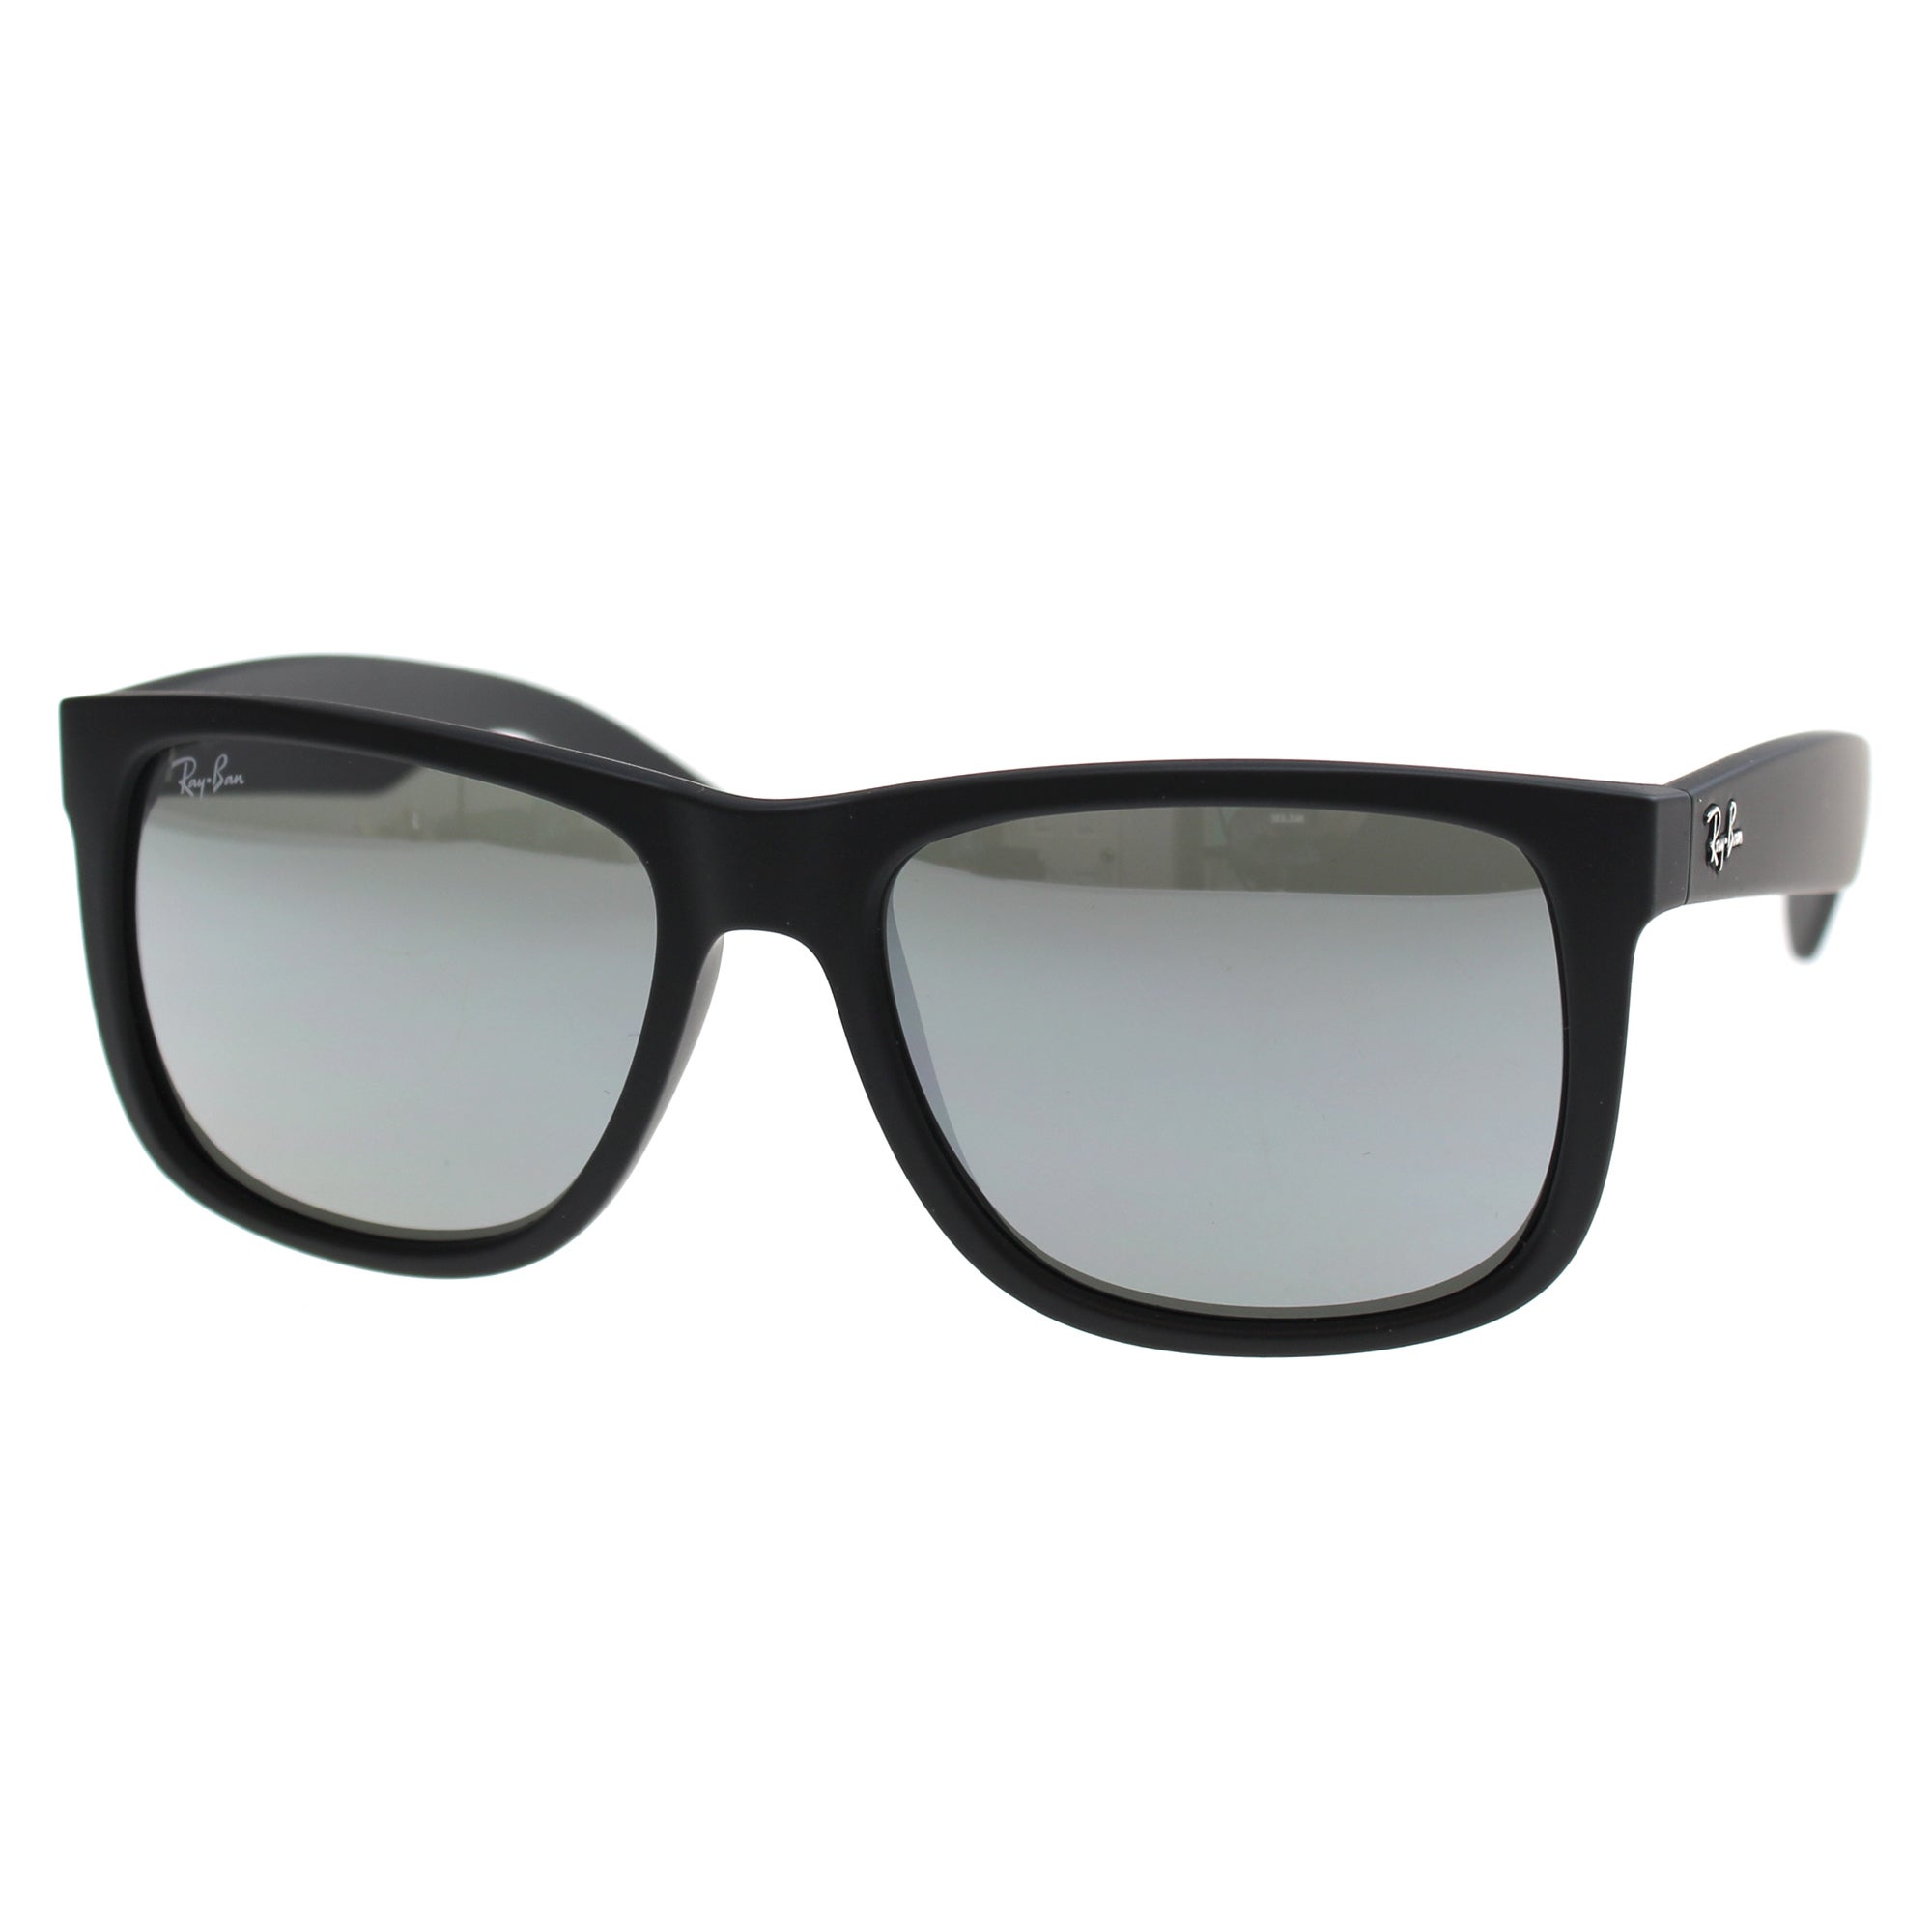 8801eaeb32 Shop Ray-Ban Justin Color Mix RB 4165 Unisex Black Frame Grey Mirror Lens  Sunglasses - Free Shipping Today - Overstock - 10809681